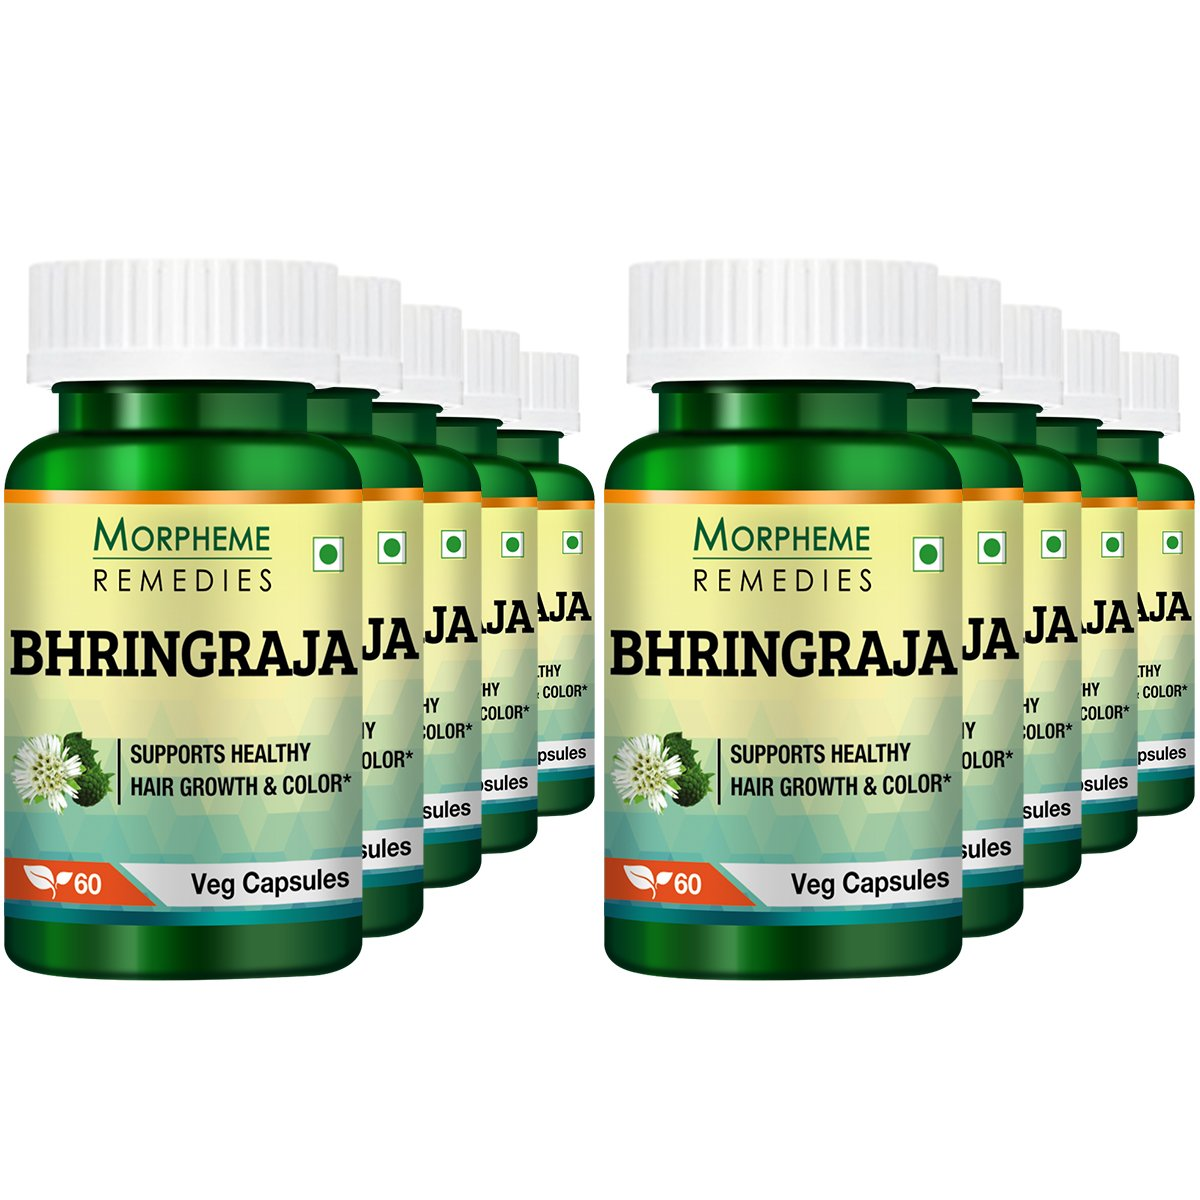 Morpheme Remedies Bhringraja Eclipta Alba 500mg Extract 60 Veg Caps Pack of 10